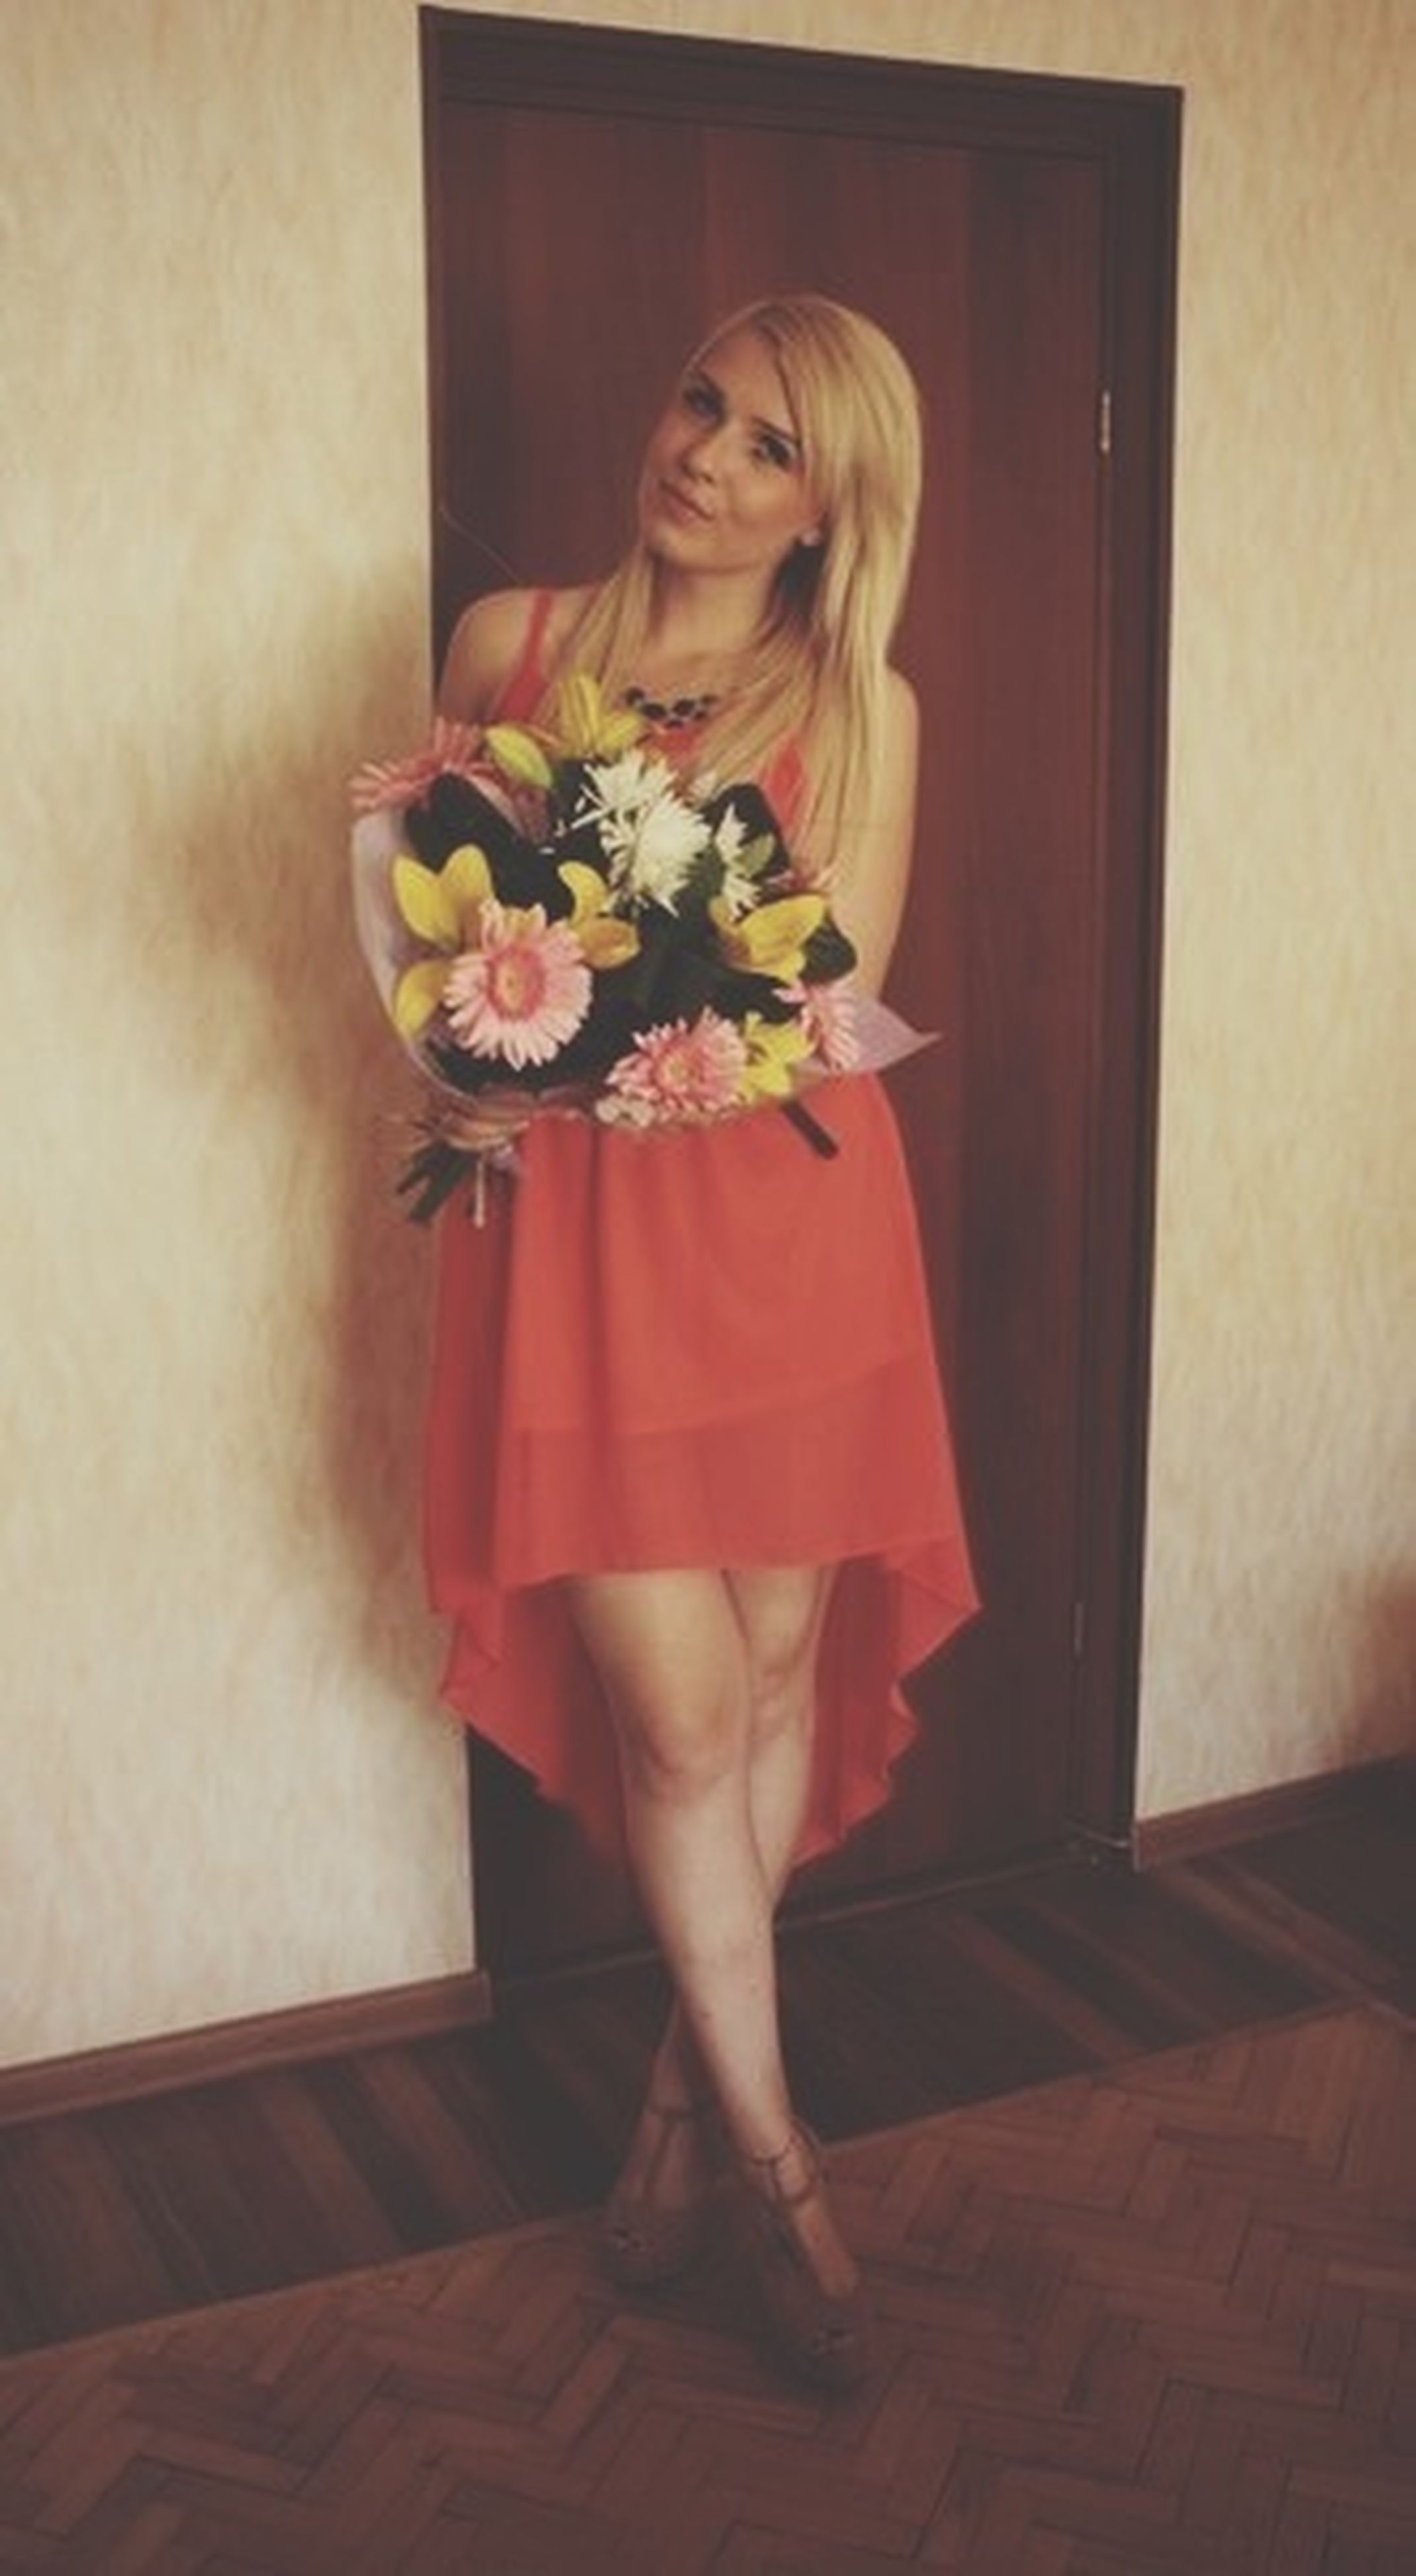 flower, indoors, red, home interior, freshness, lifestyles, holding, young women, bouquet, plant, person, front view, standing, vase, dress, wall - building feature, wood - material, table